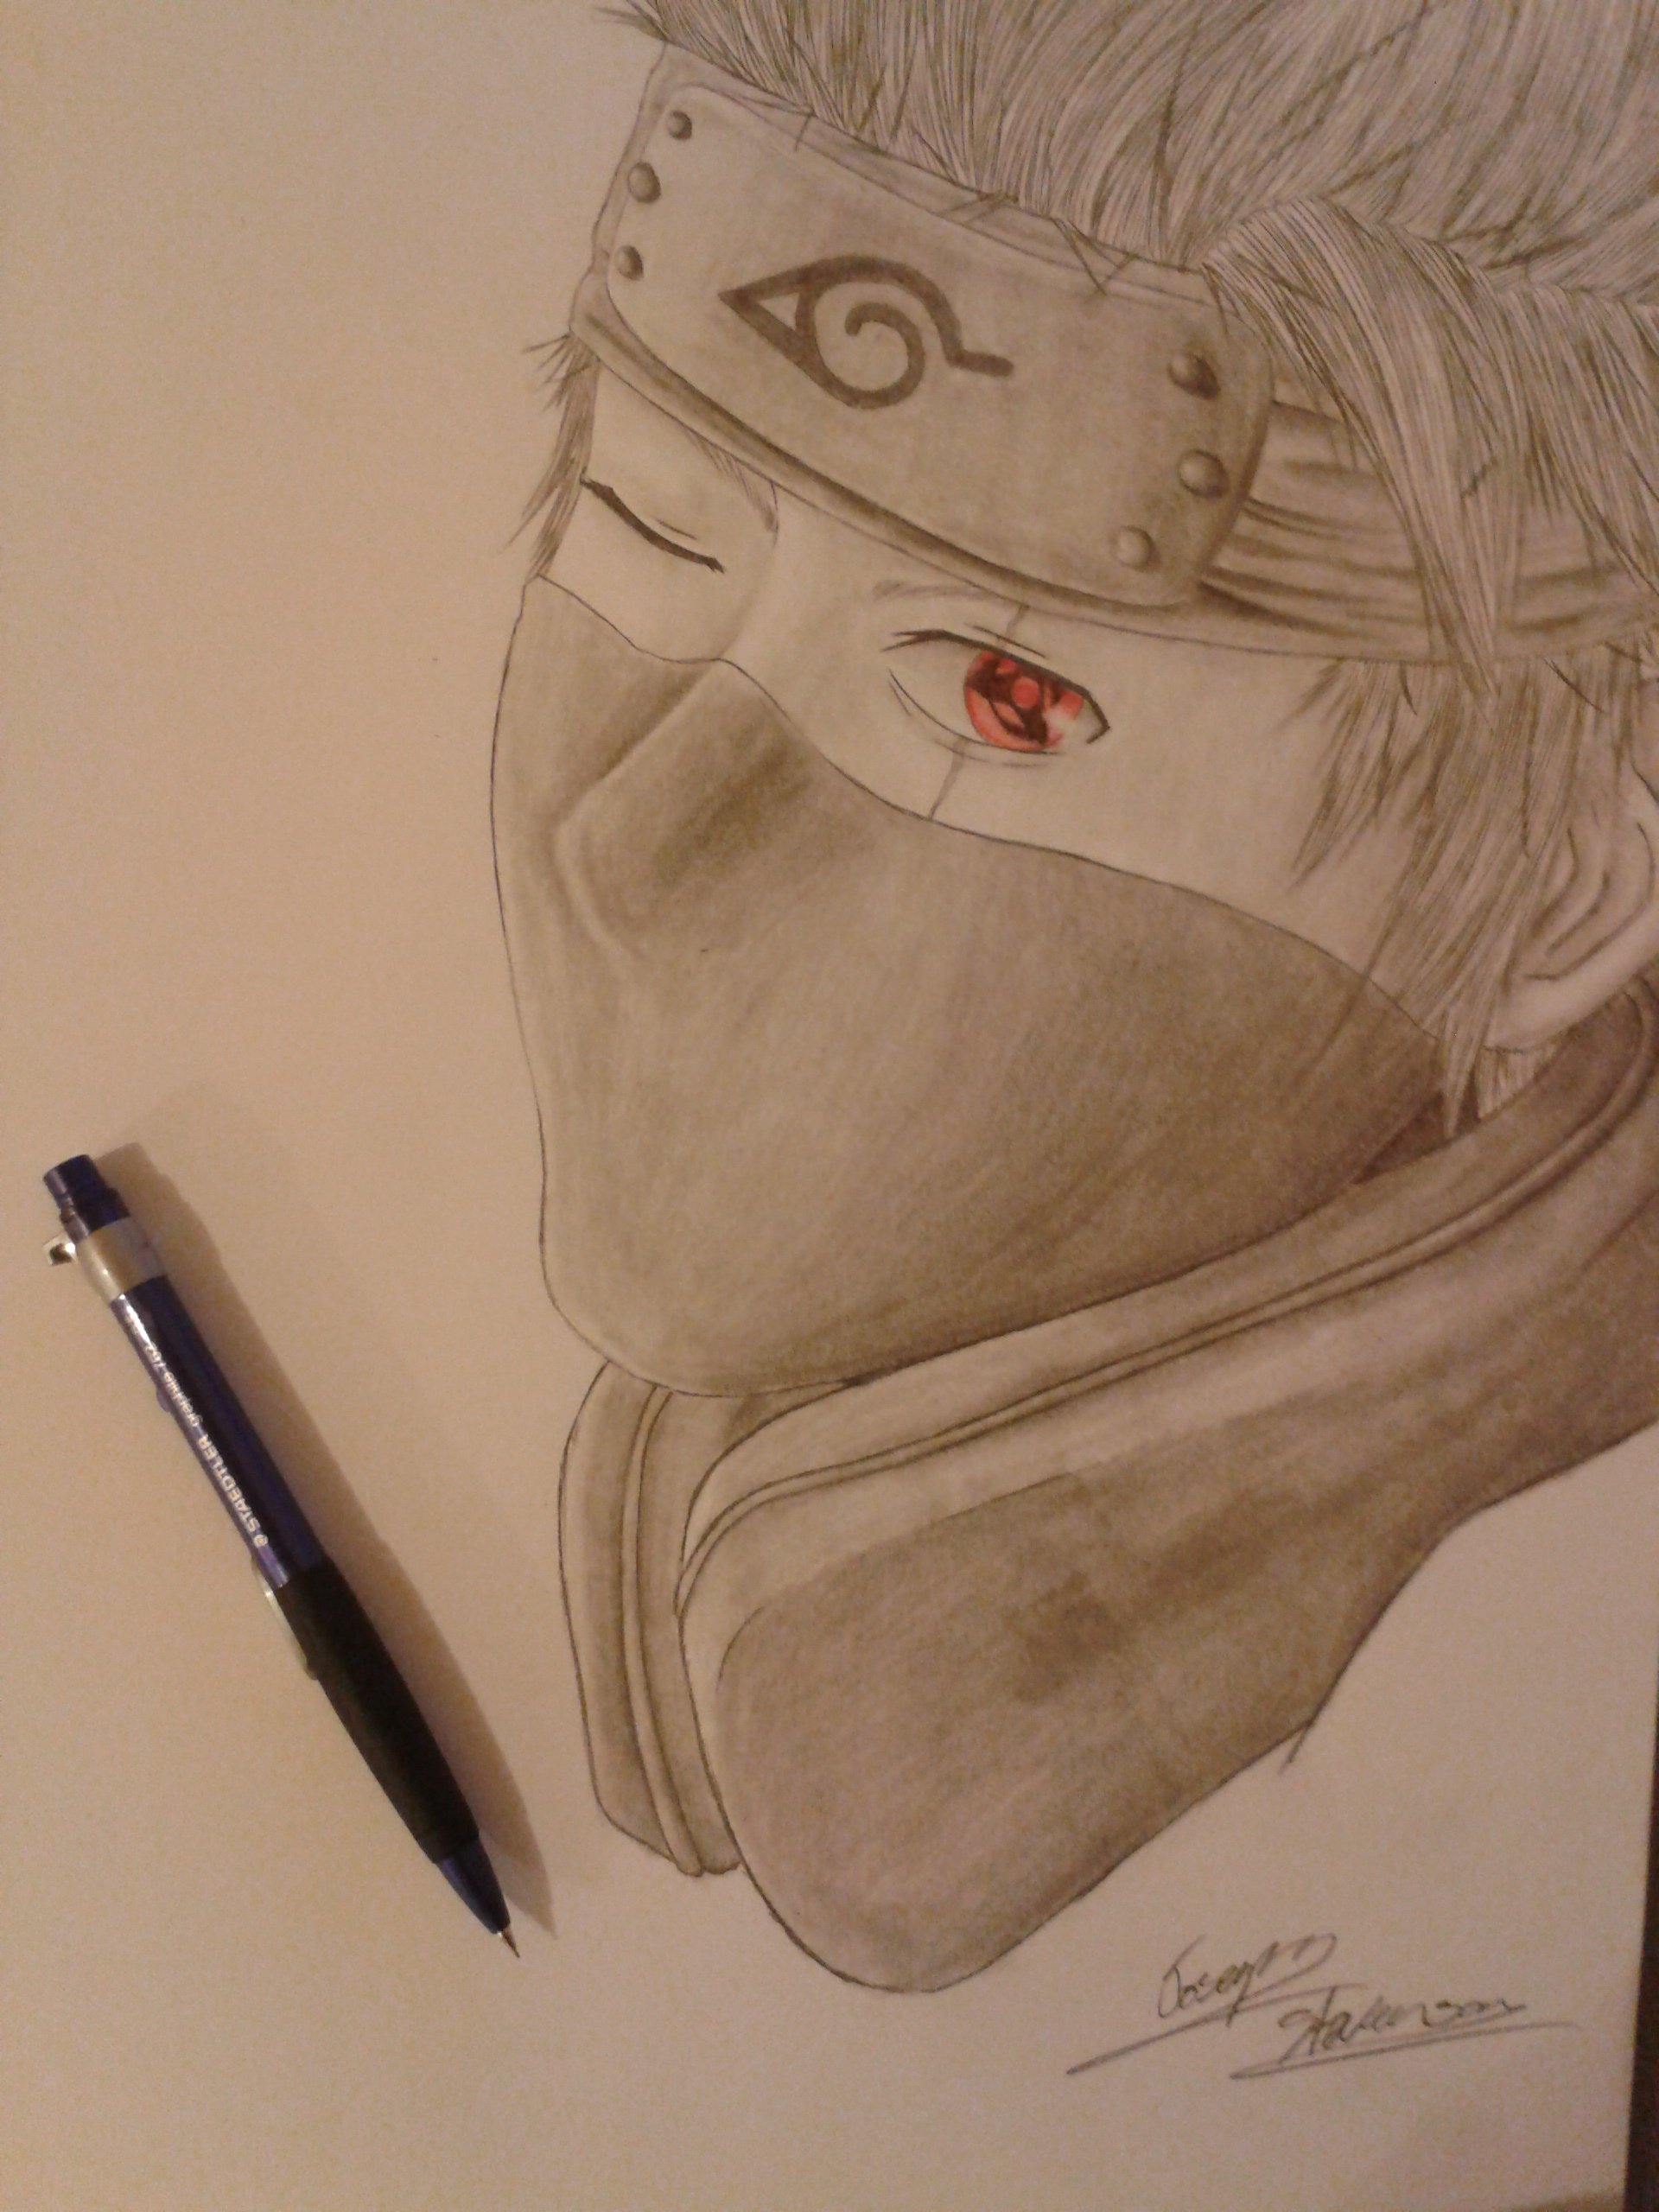 Detailed Kakashi Hatake by mangaxai